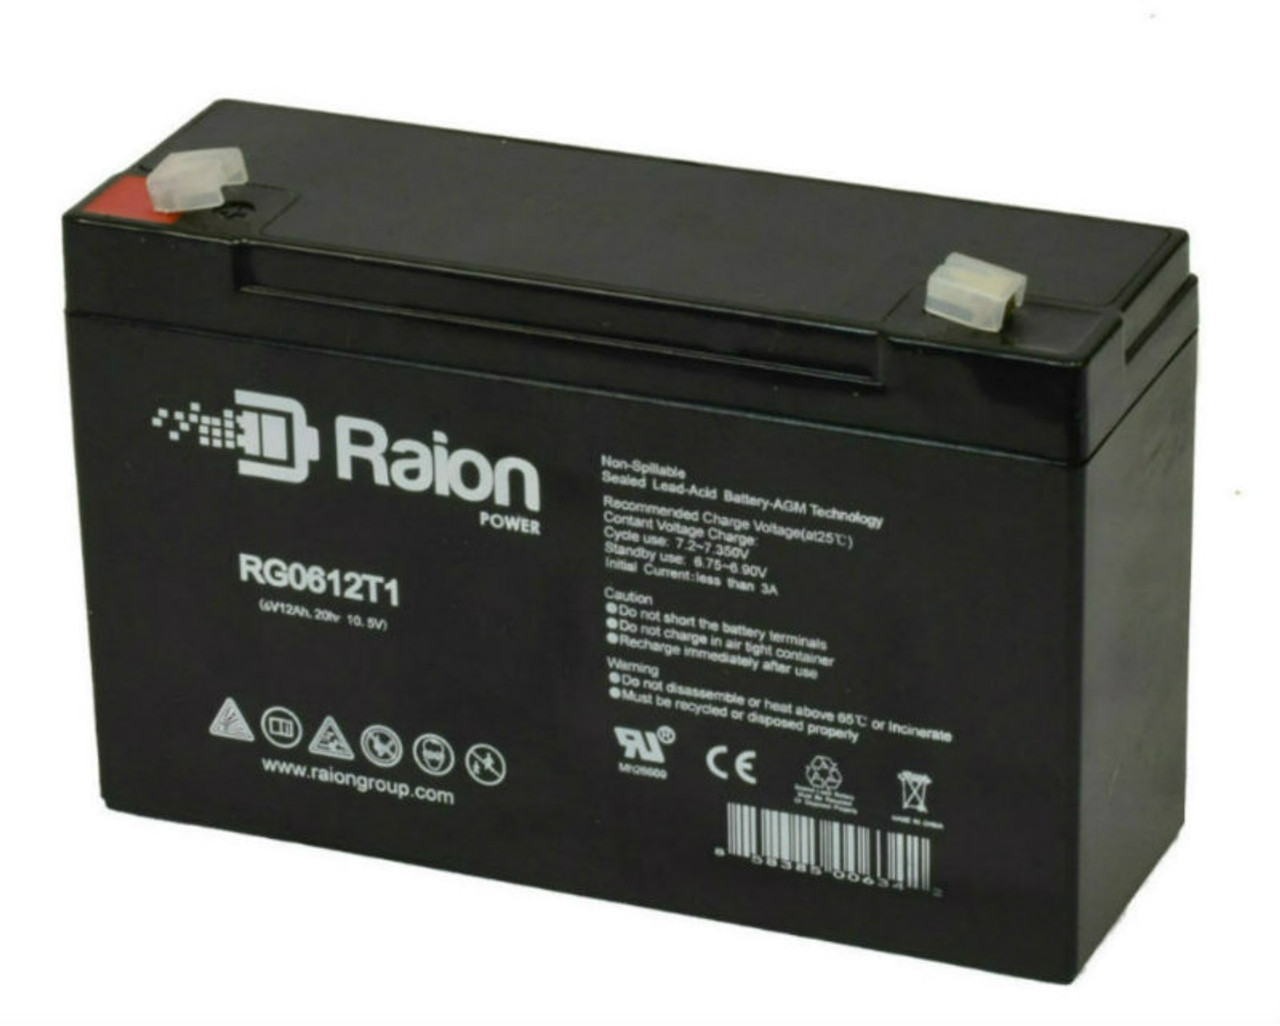 Raion Power RG06120T1 Replacement Battery Pack for Teledyne 2IM6S8 emergency light